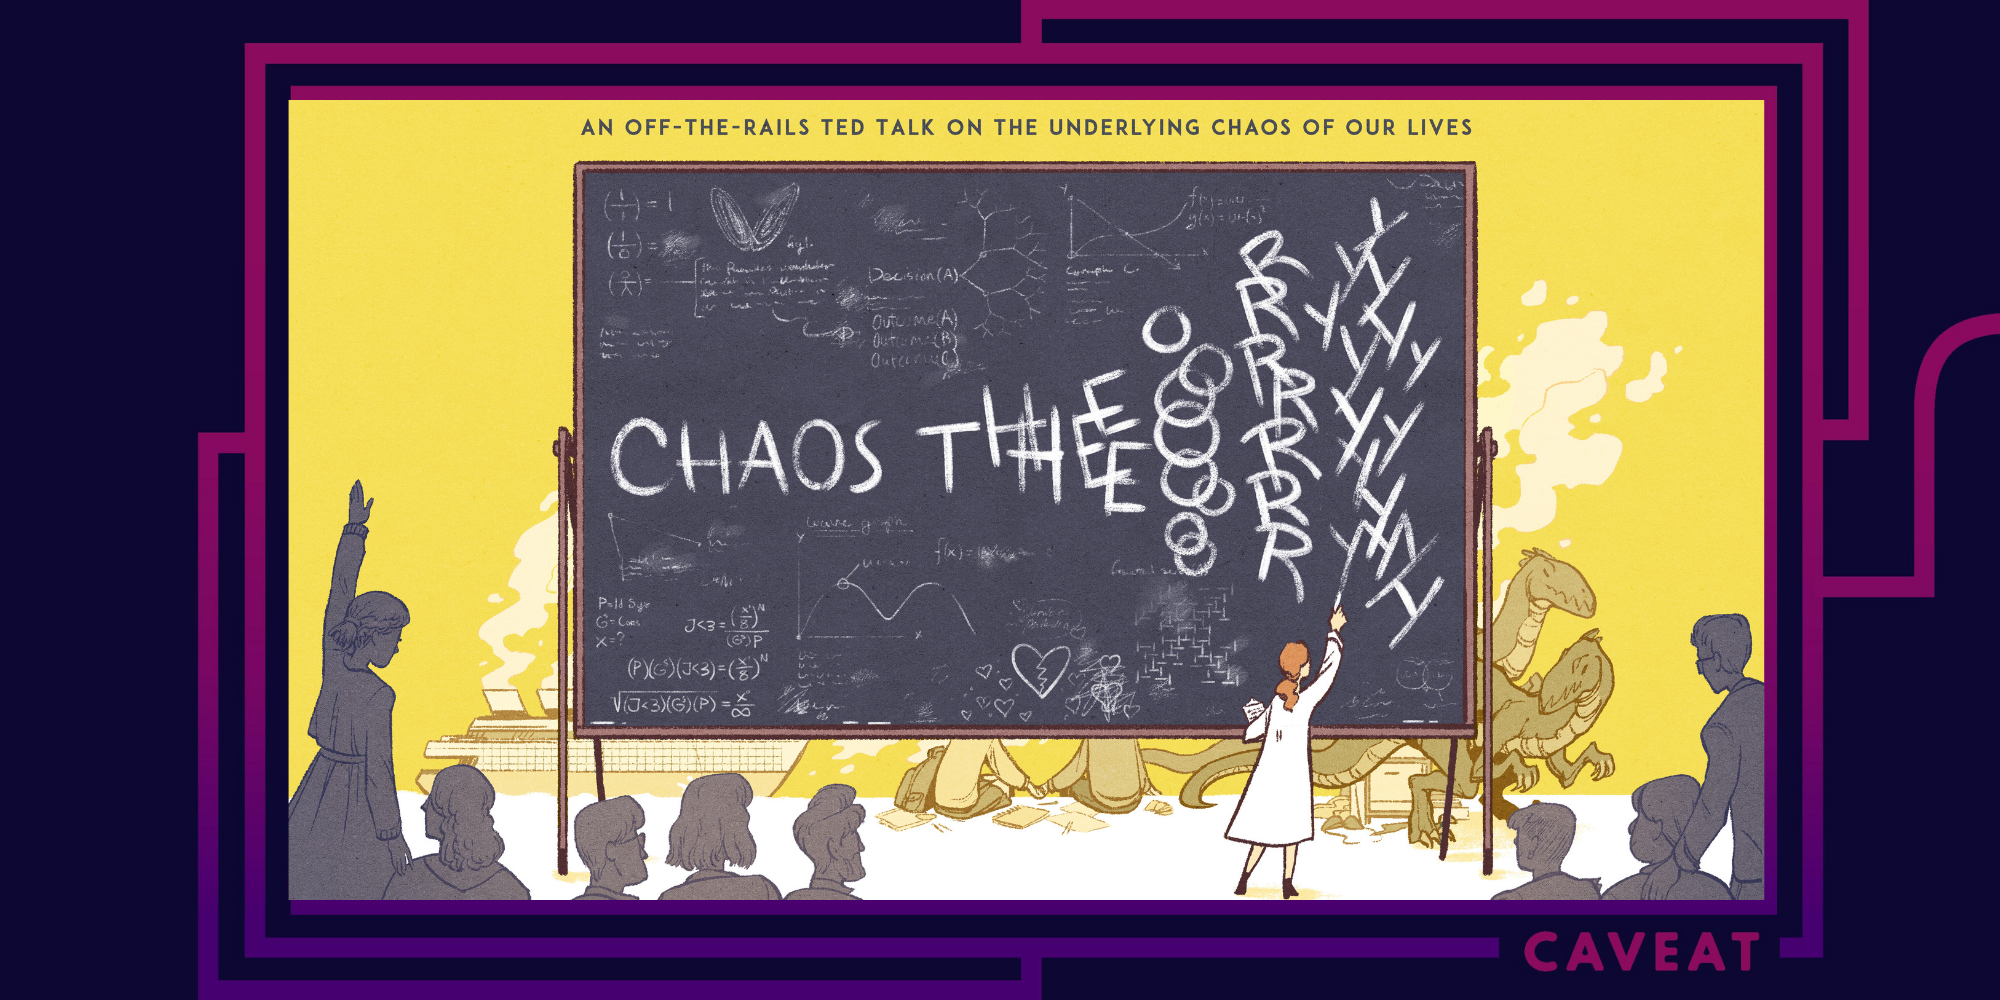 1909 image - Chaos Theory: an off-the-rails TED Talk on the underlying chaos of our lives